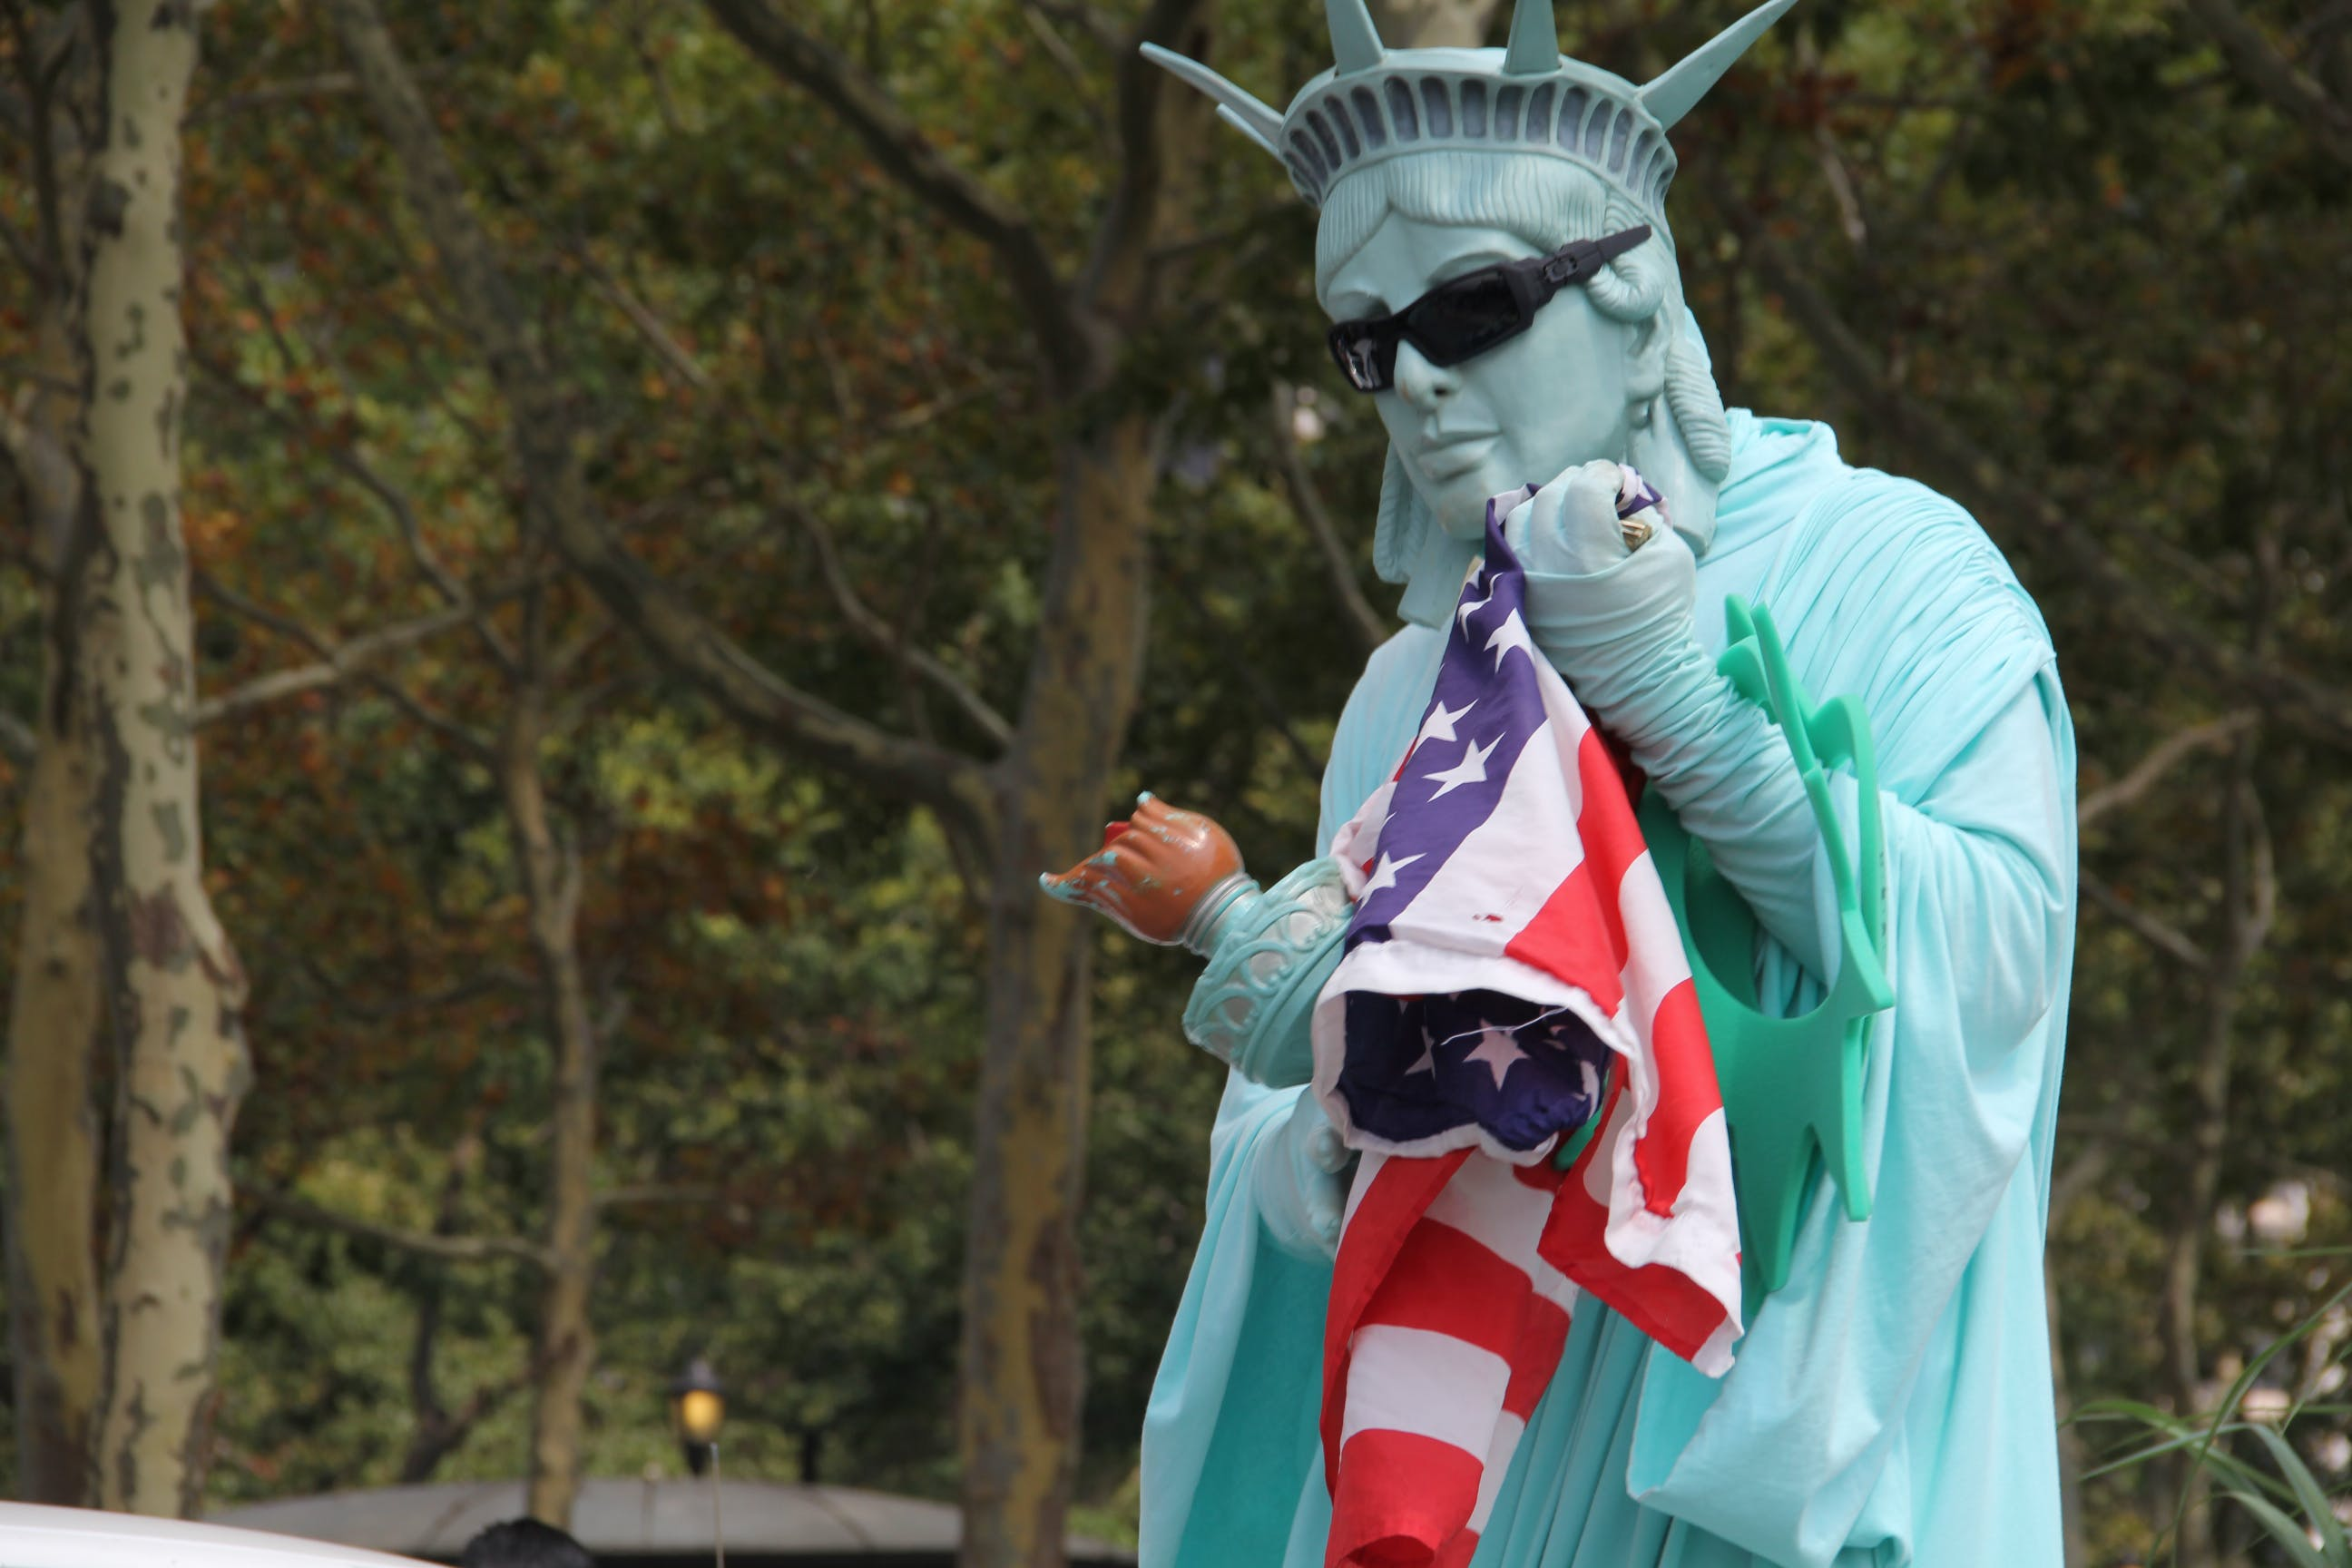 Free stock photo of New City Symbol, Statue of liberty model, statues